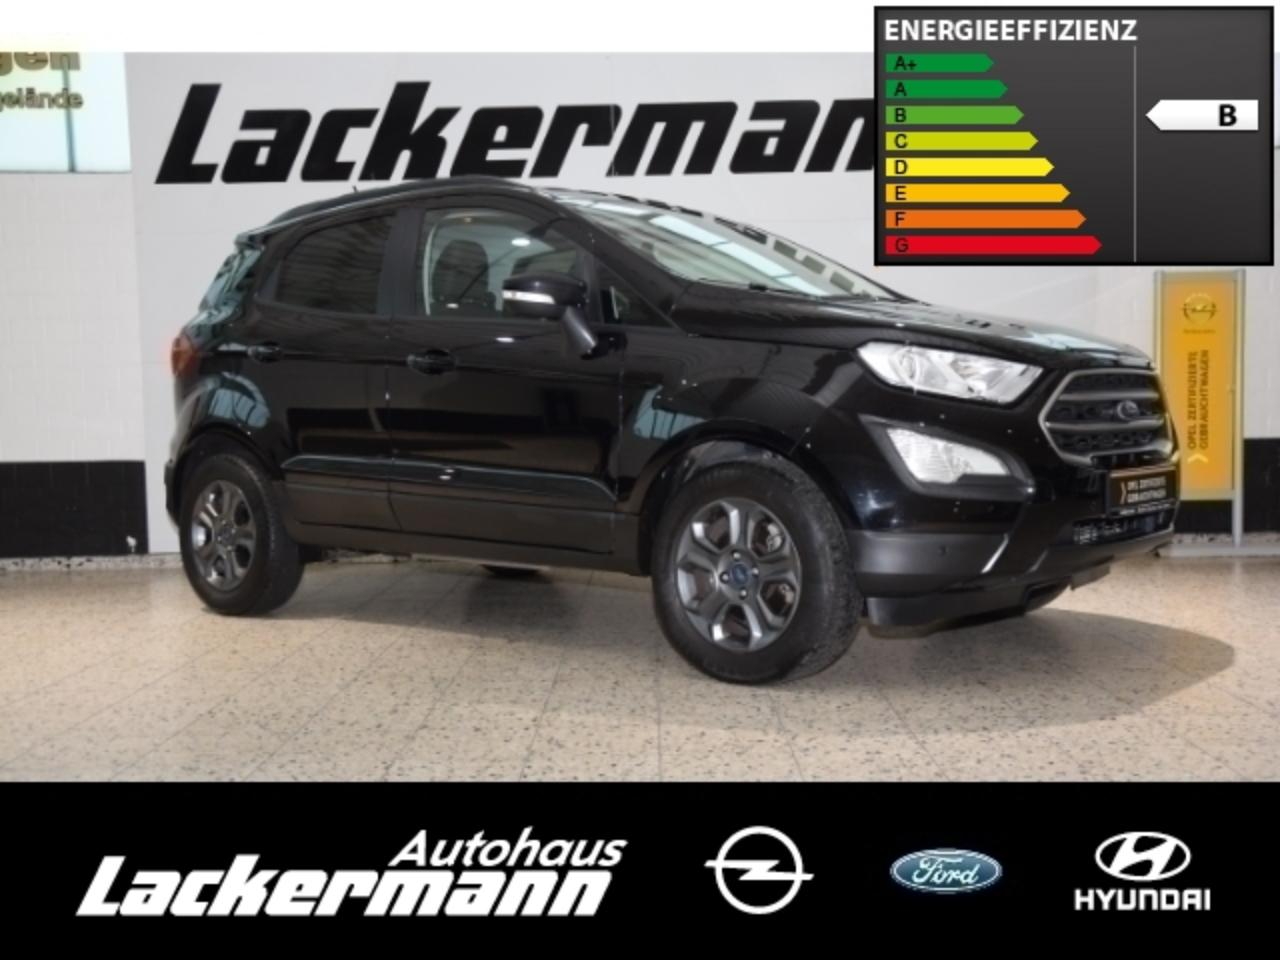 Ford Ecosport Cool&Connect 1.0 EcoBoost PDCv+h LED-Tagfahrlicht